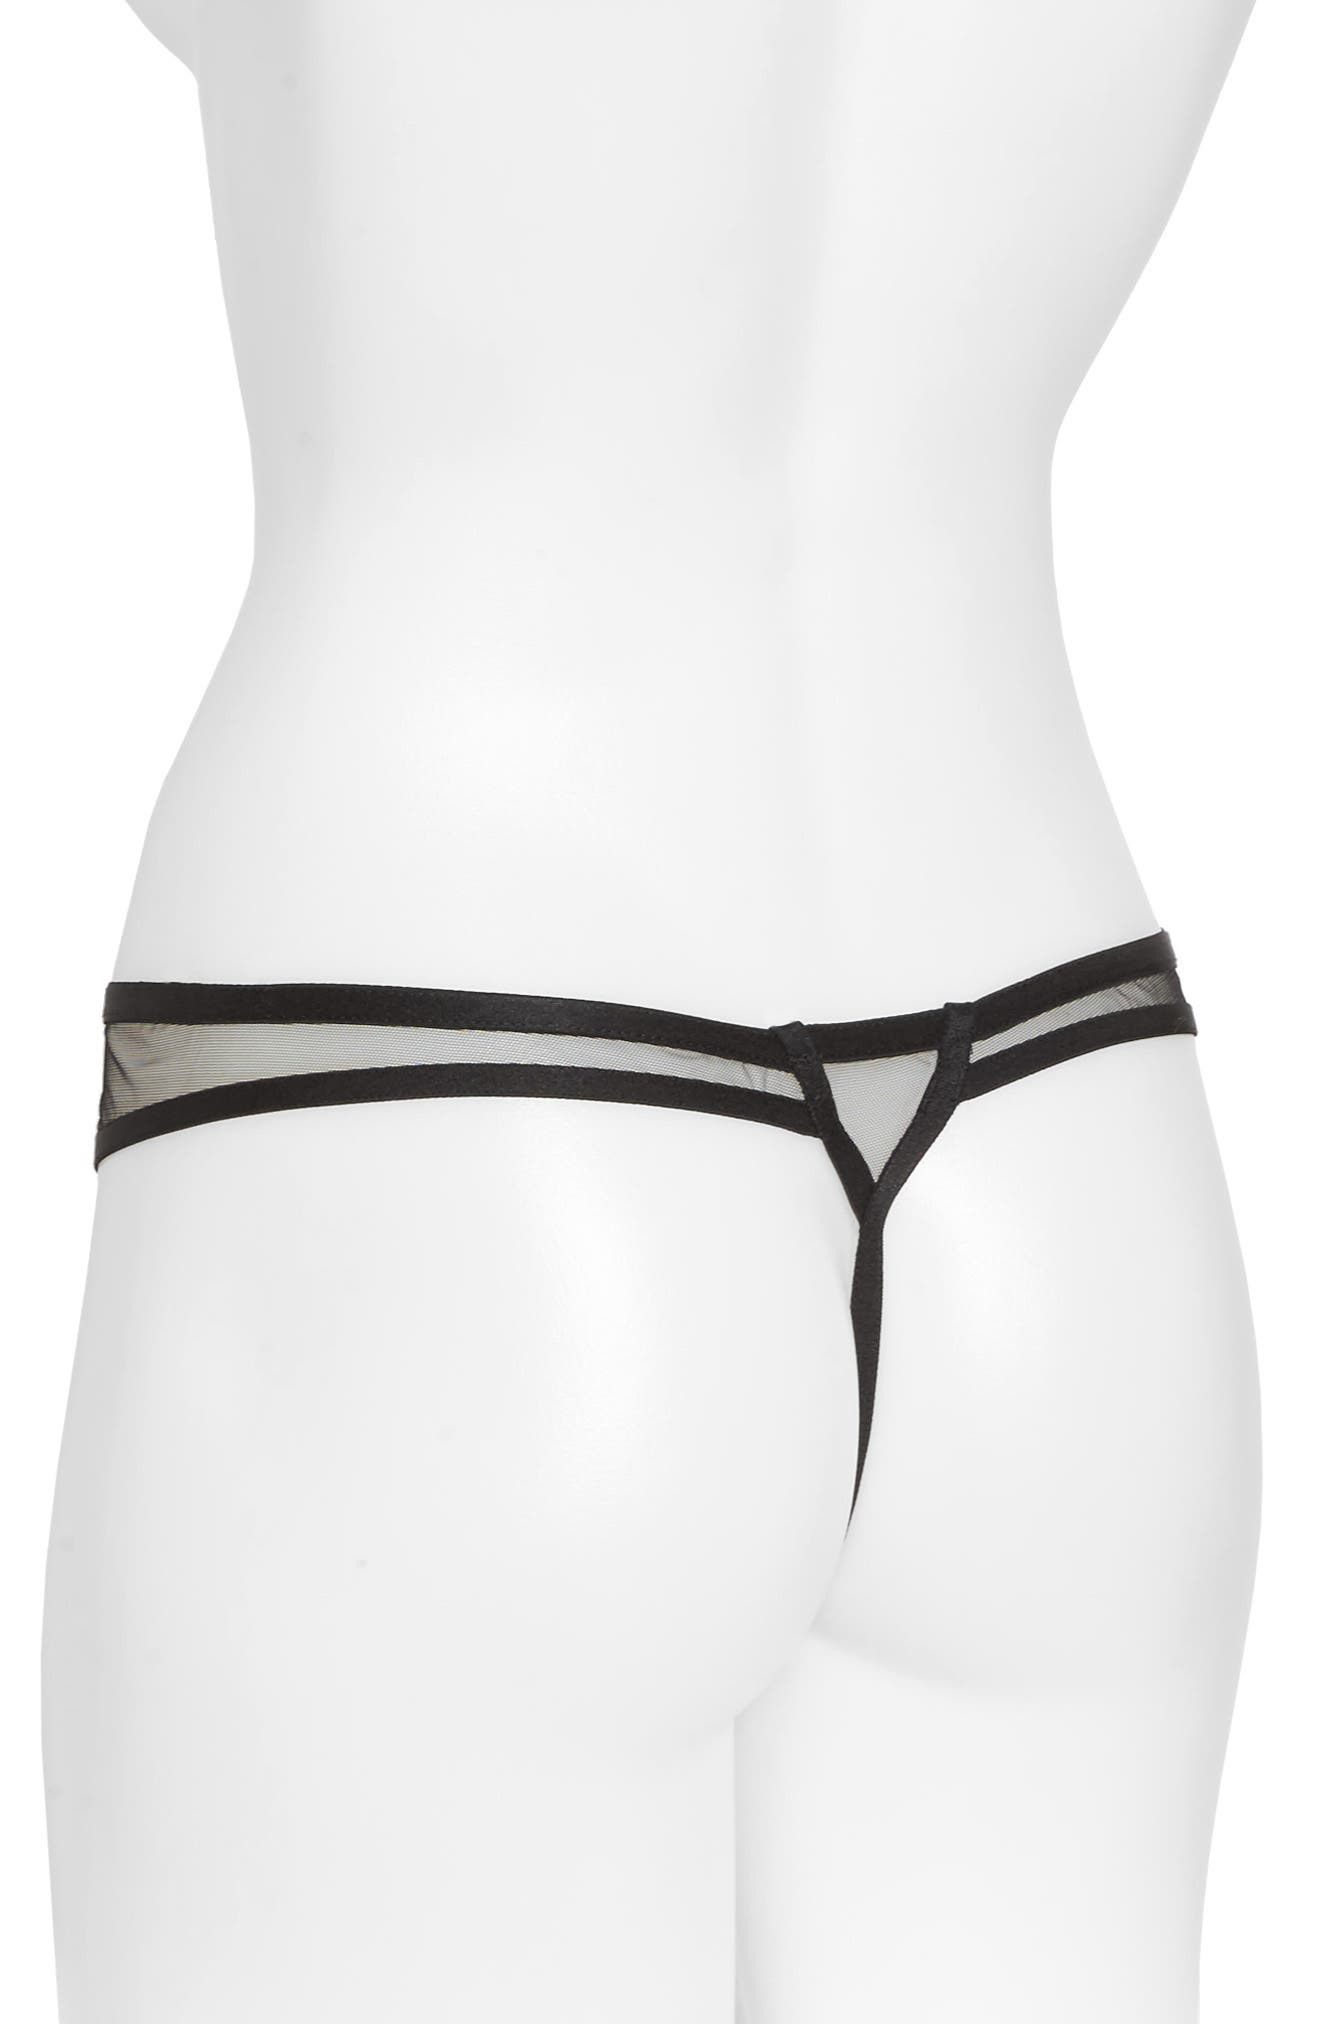 Exotique G-String Thong,                             Alternate thumbnail 2, color,                             Black/ Nude